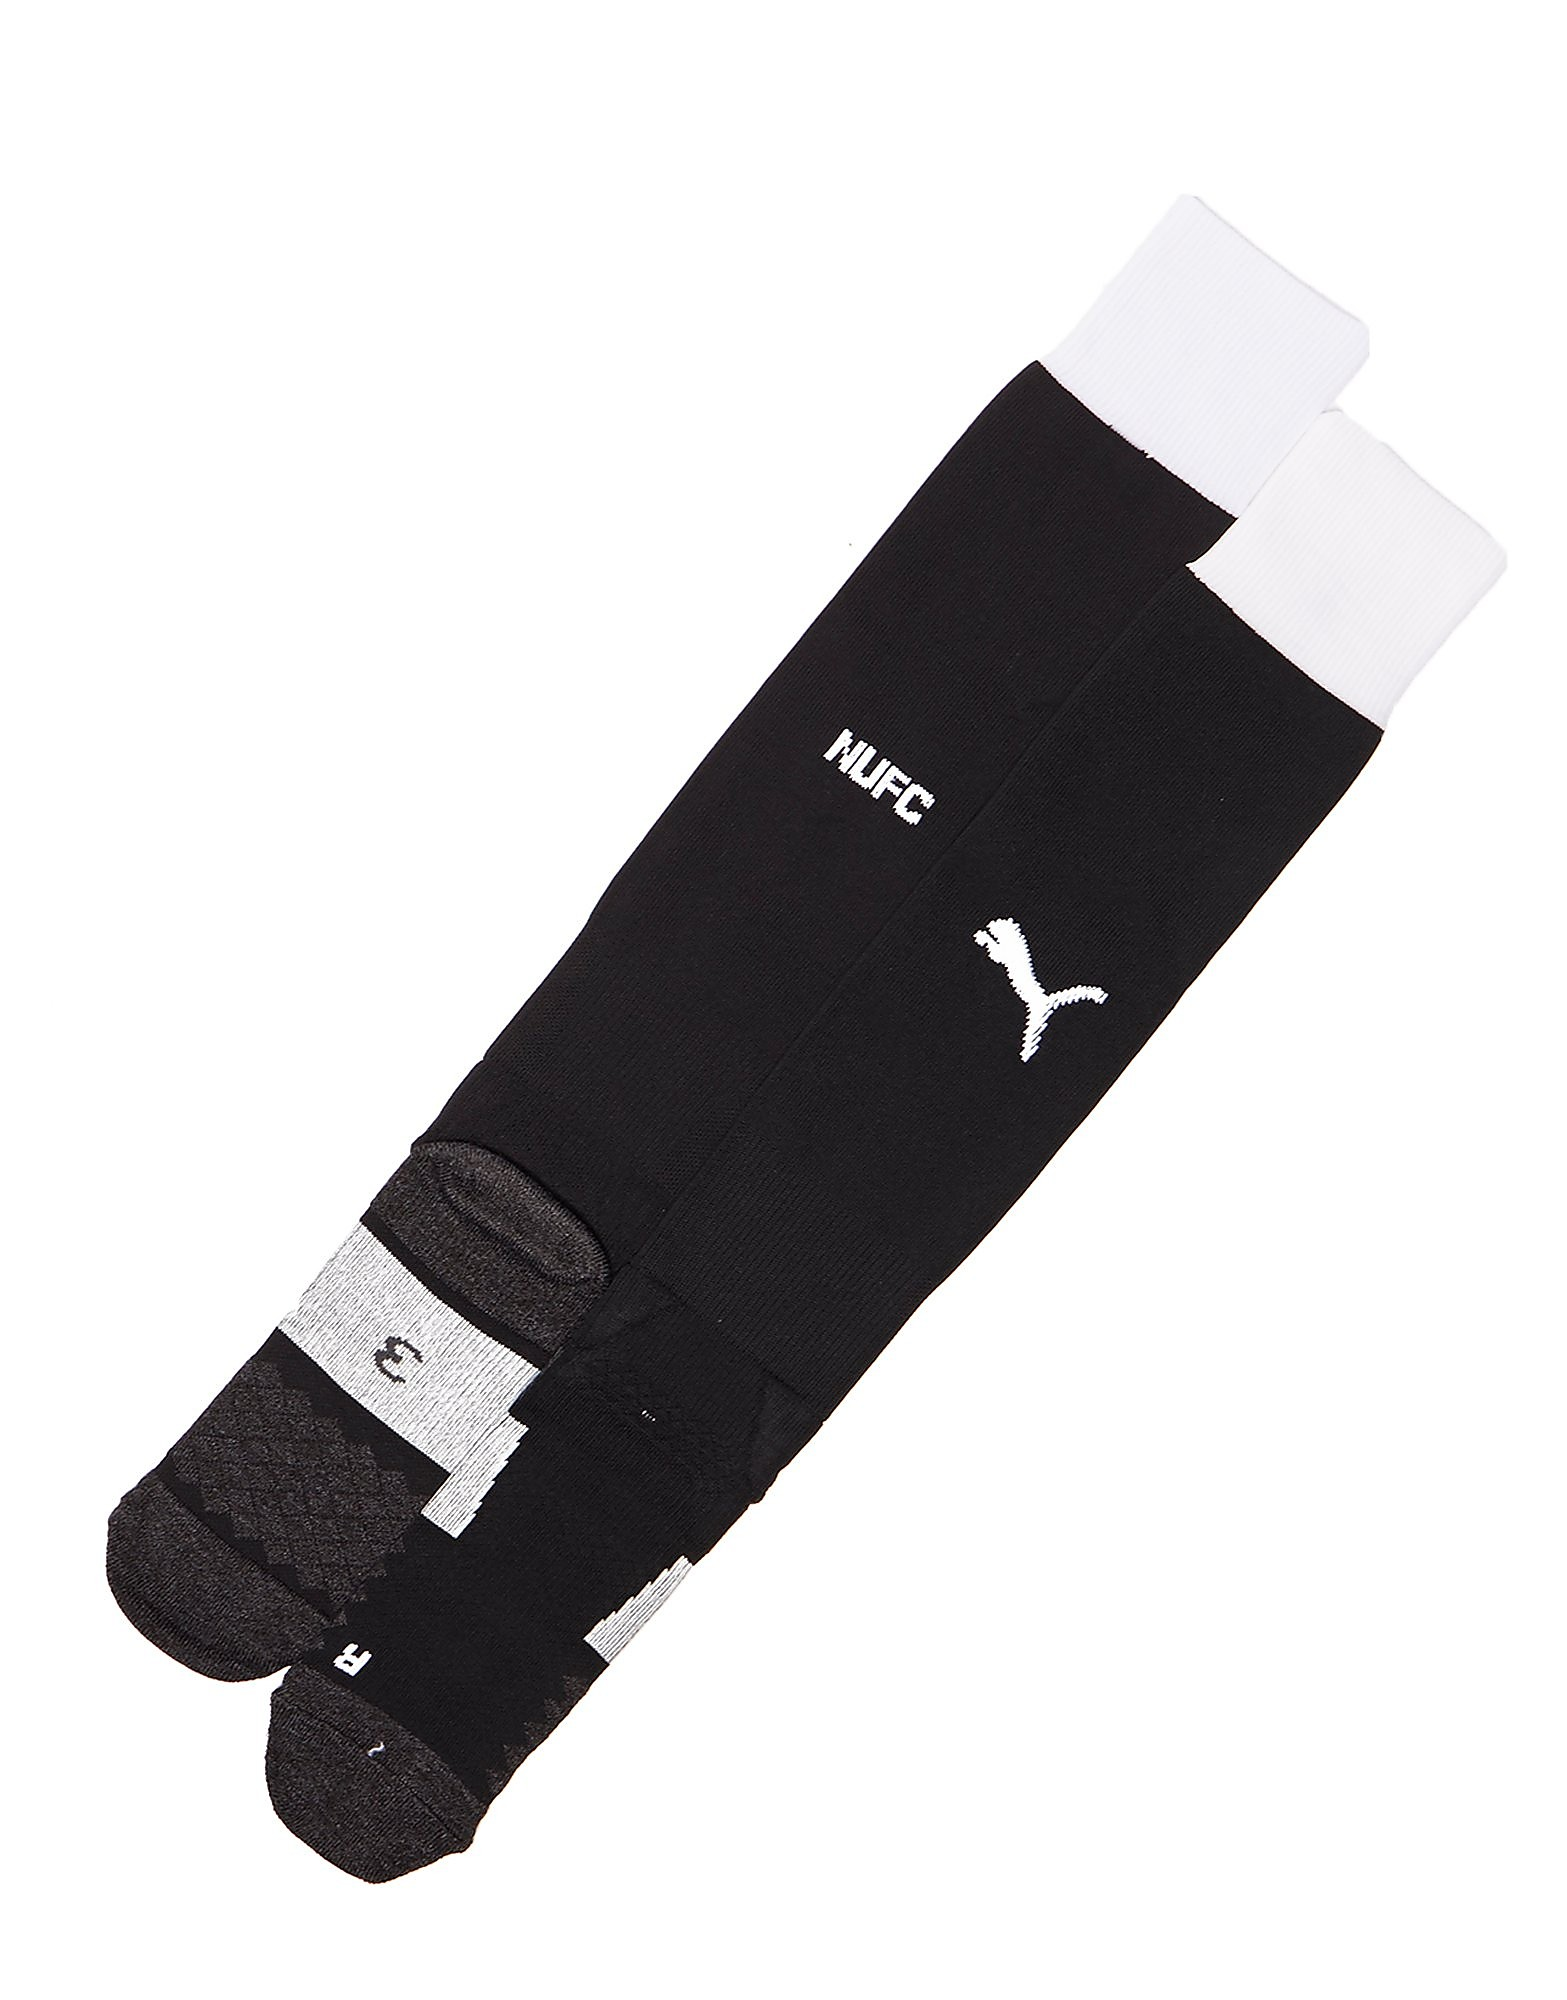 PUMA Newcastle United 2017/18 Home Socks